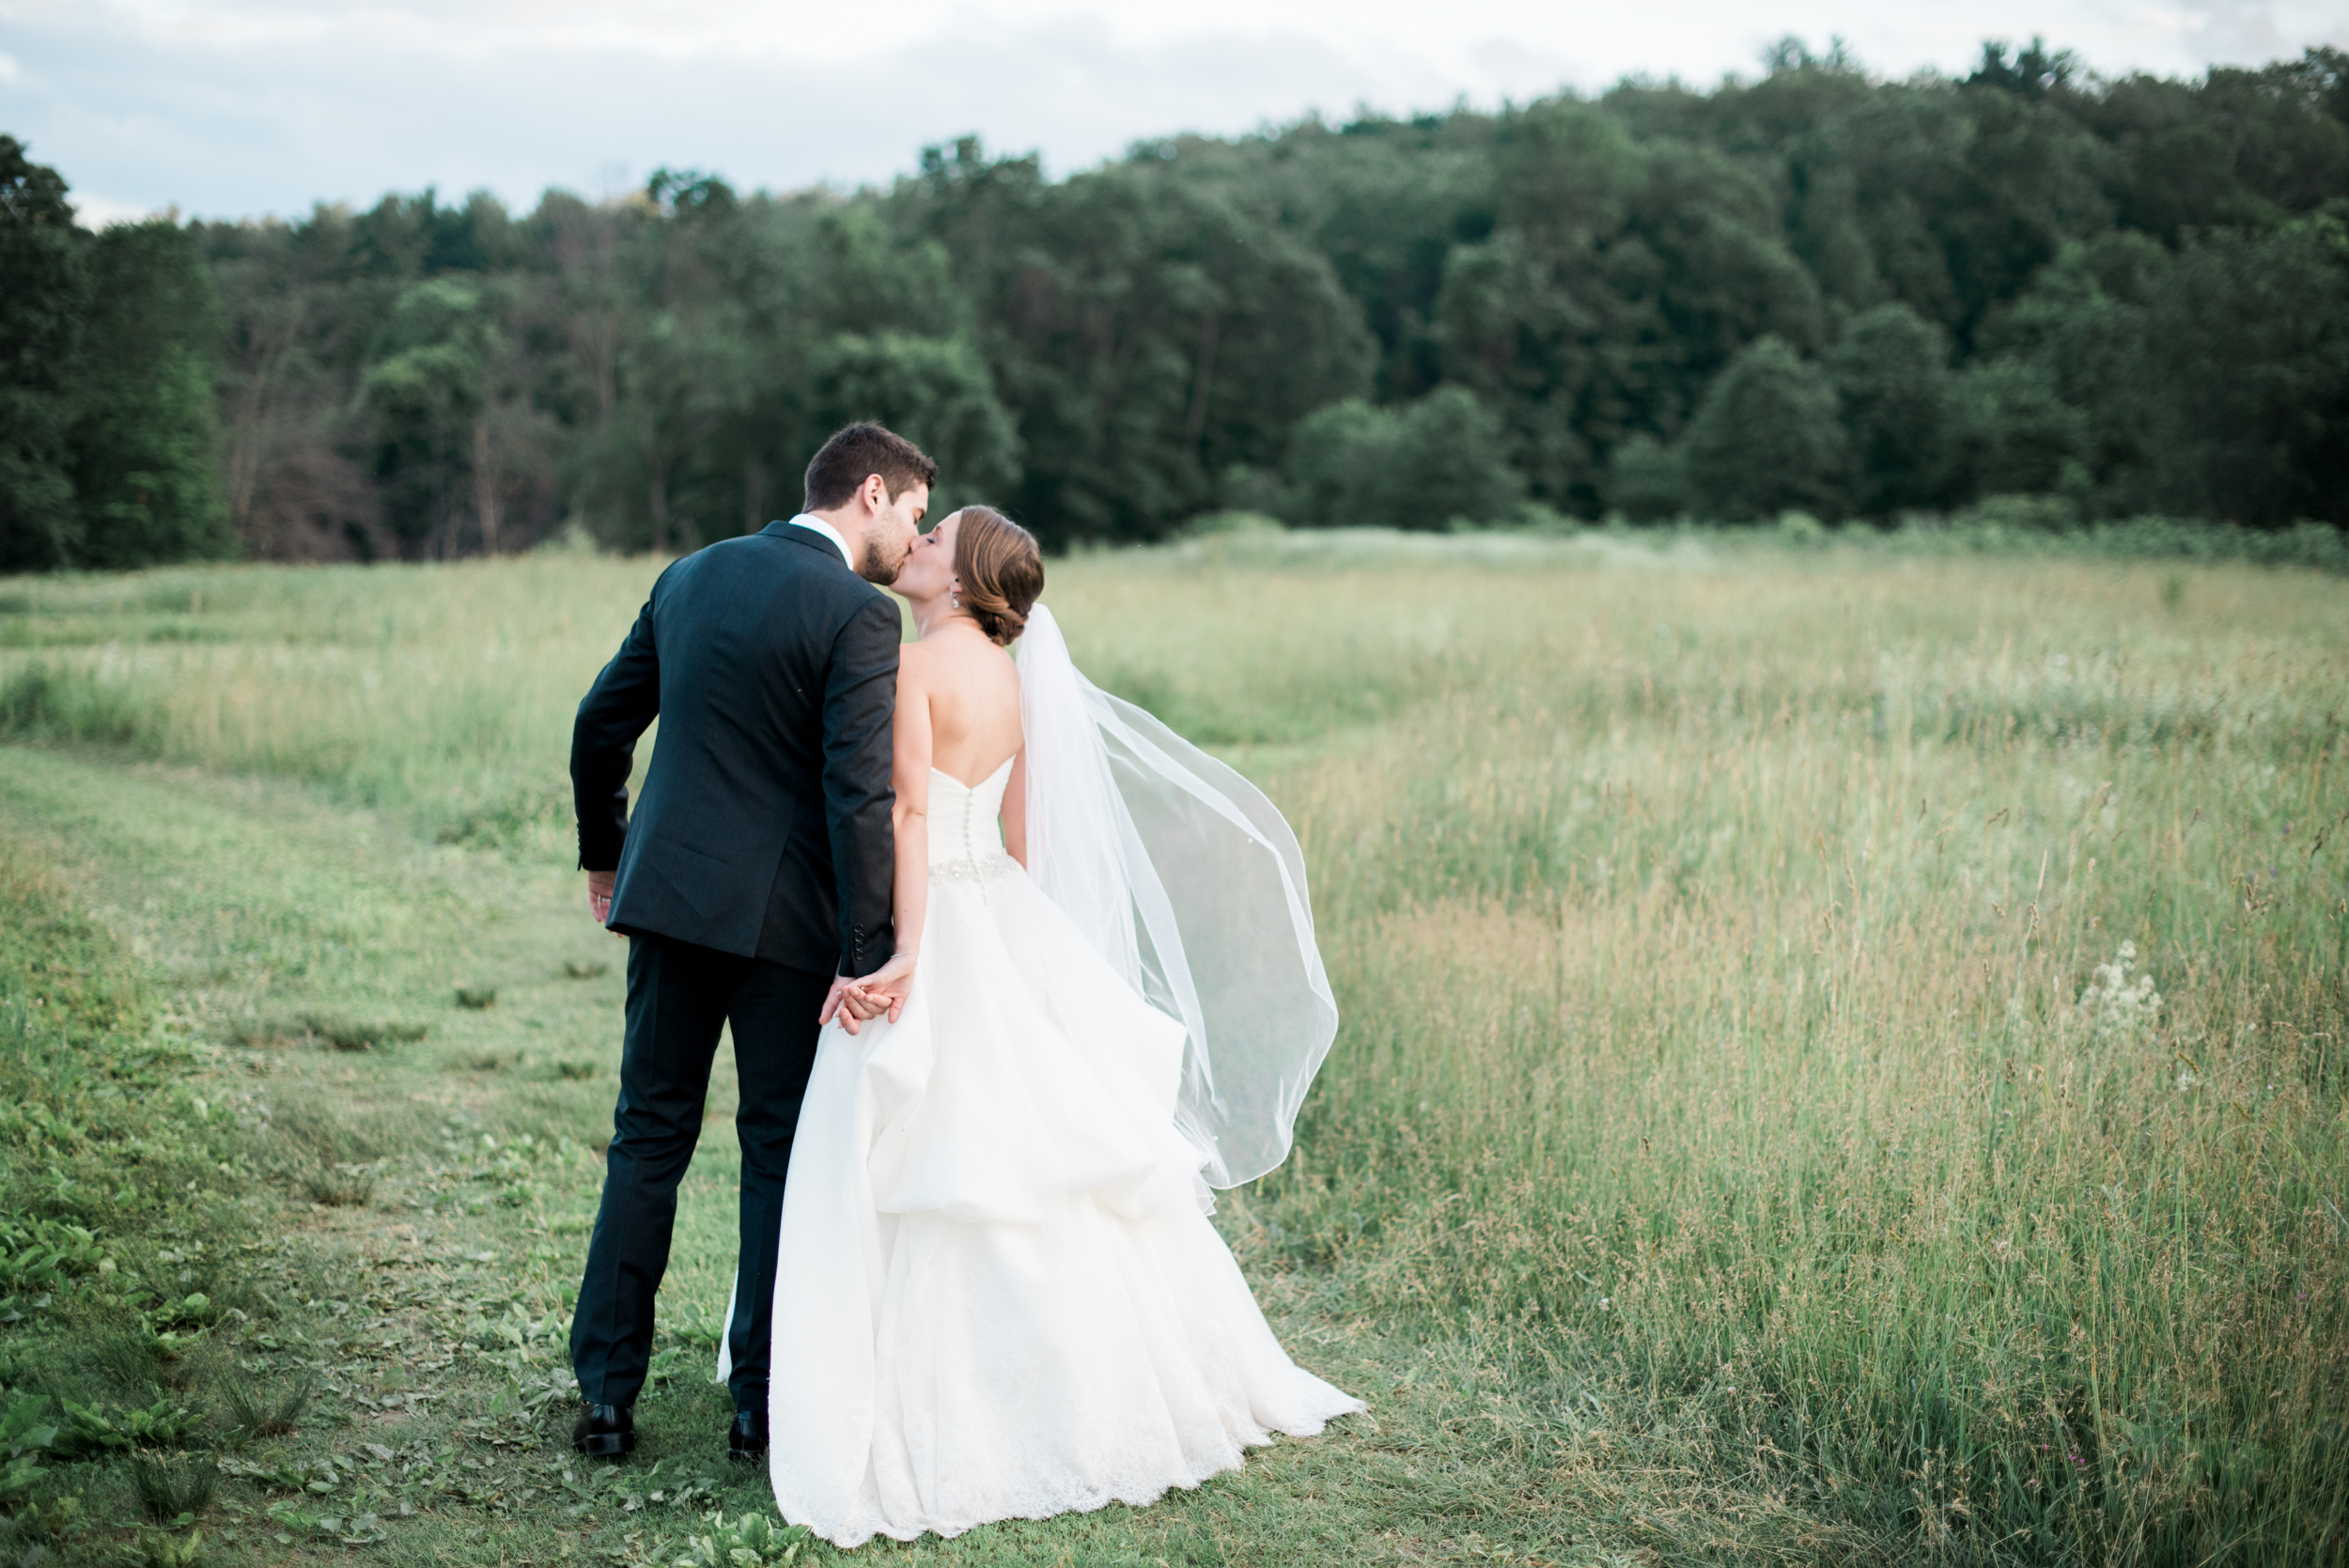 Timeless wedding photography in Western Mass